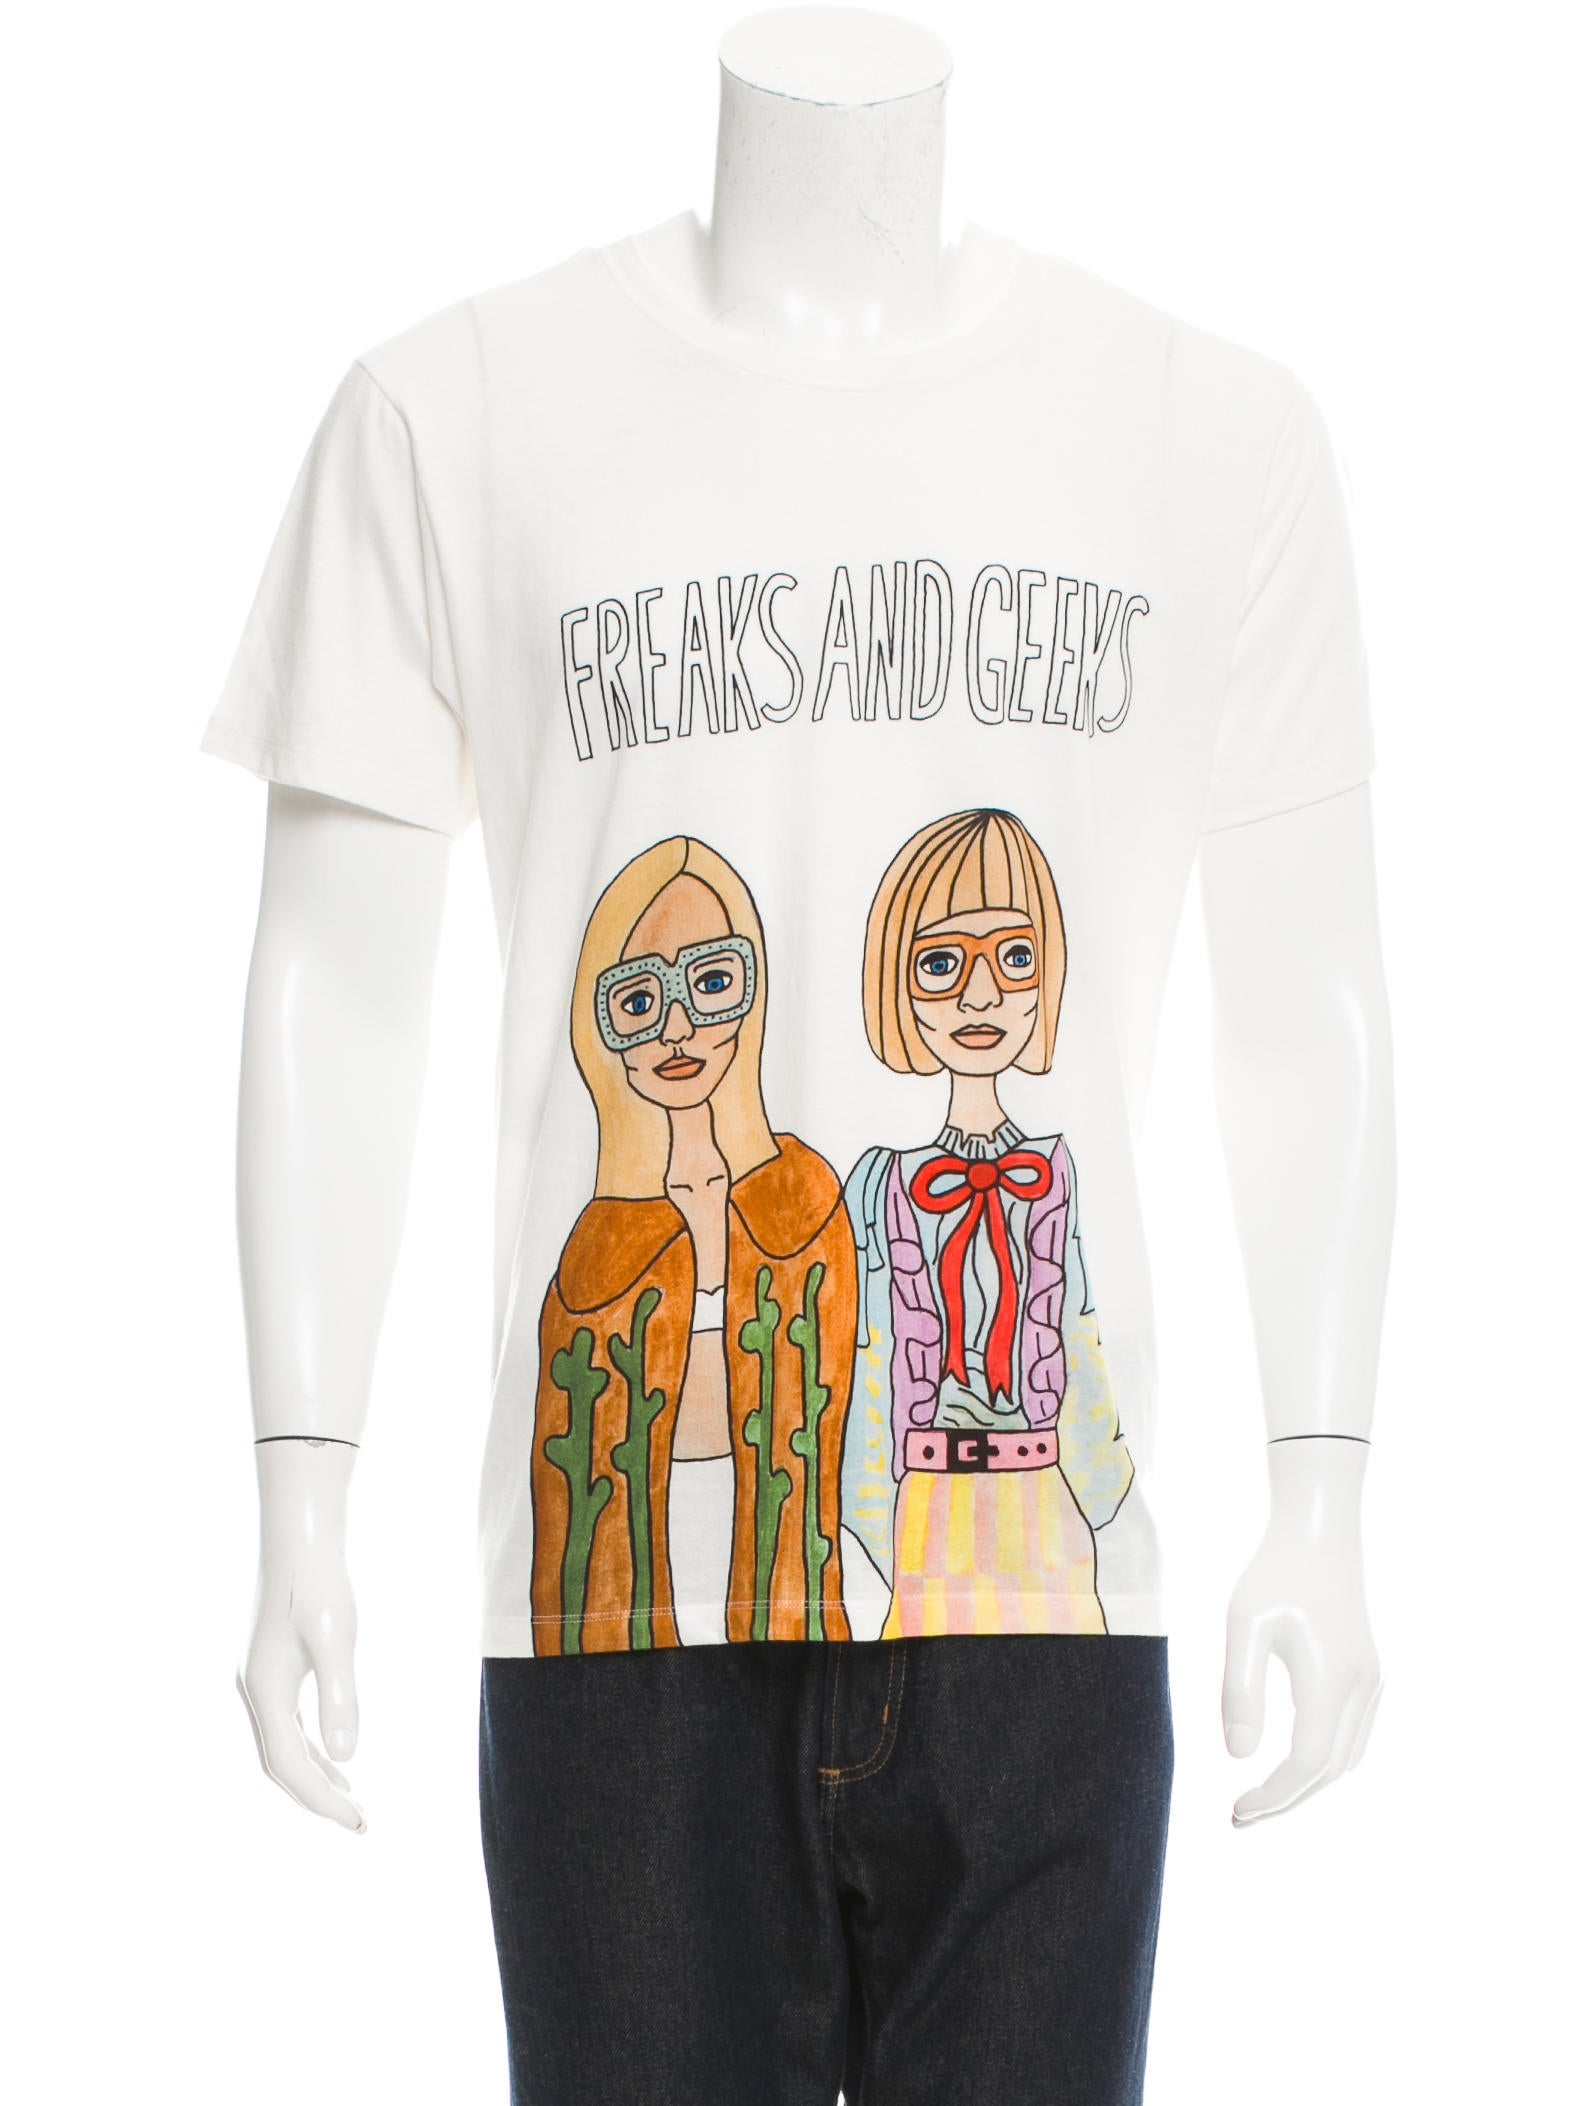 Freaks and geeks clothing store